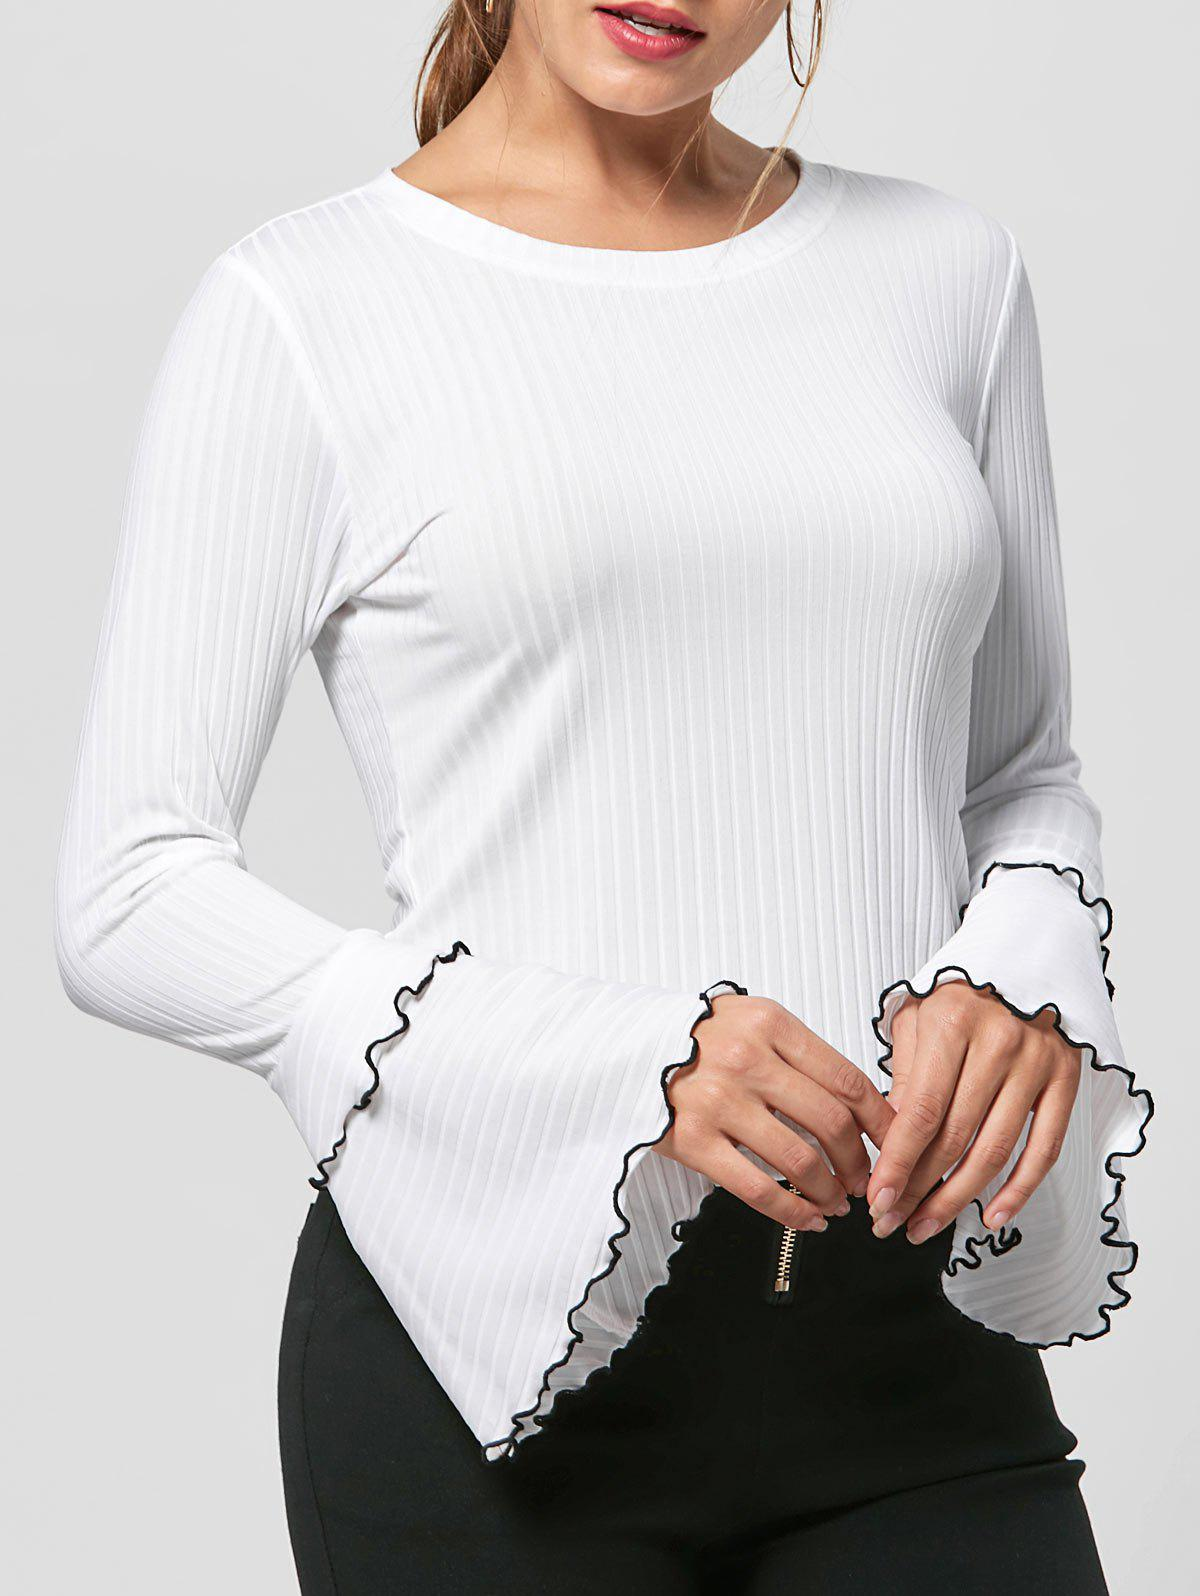 Knit Striped Layered Flare Sleeve Top - WHITE L